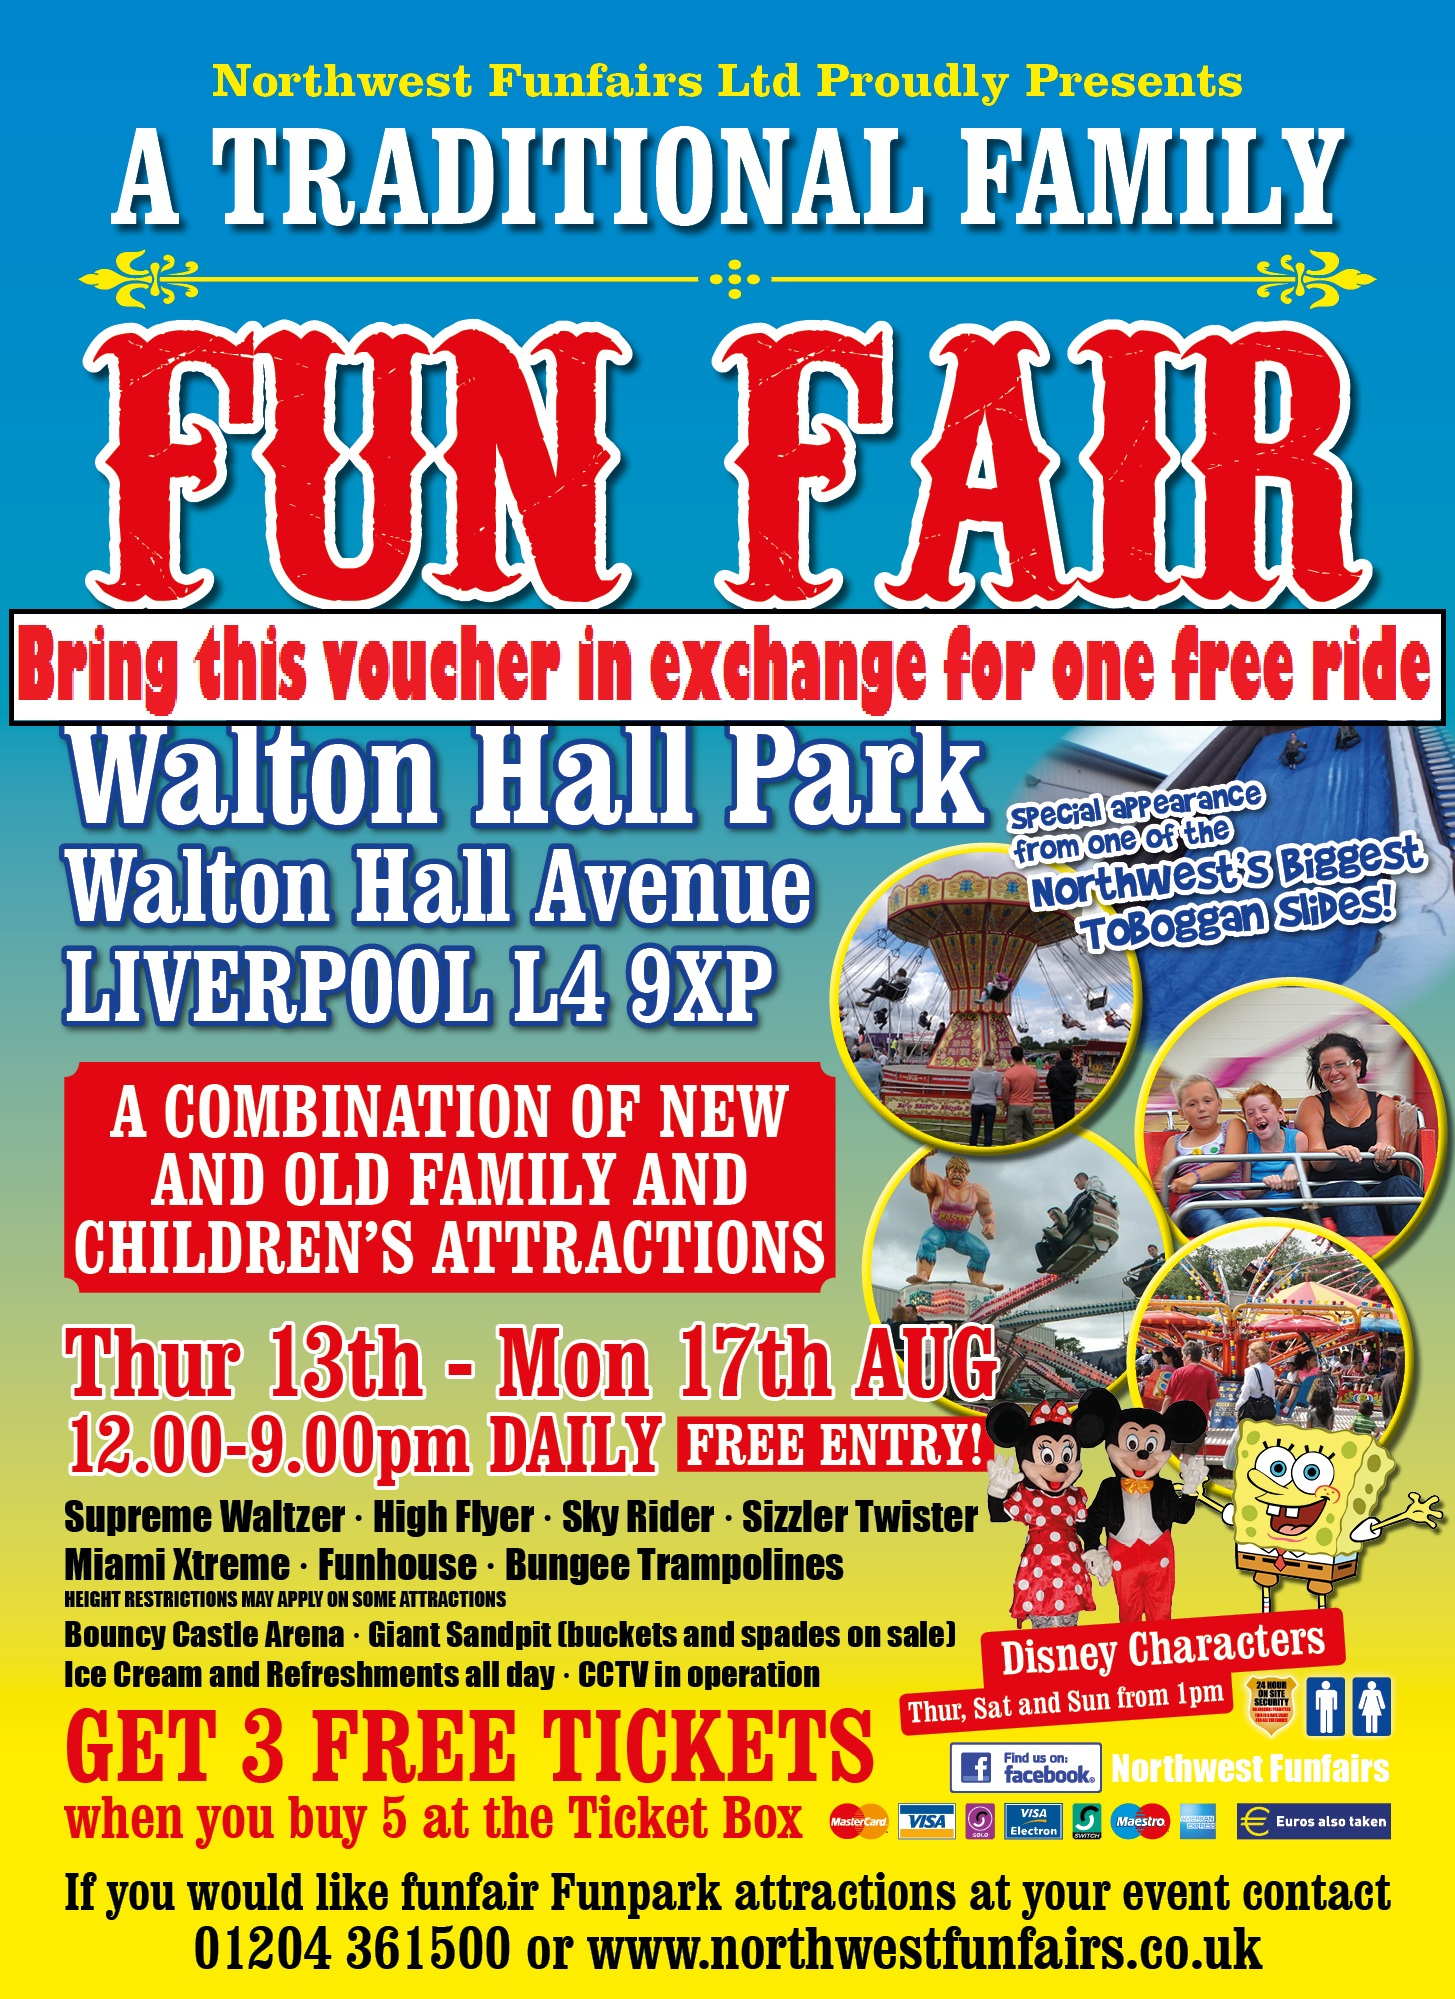 walton hall park traditional family funfair   north west